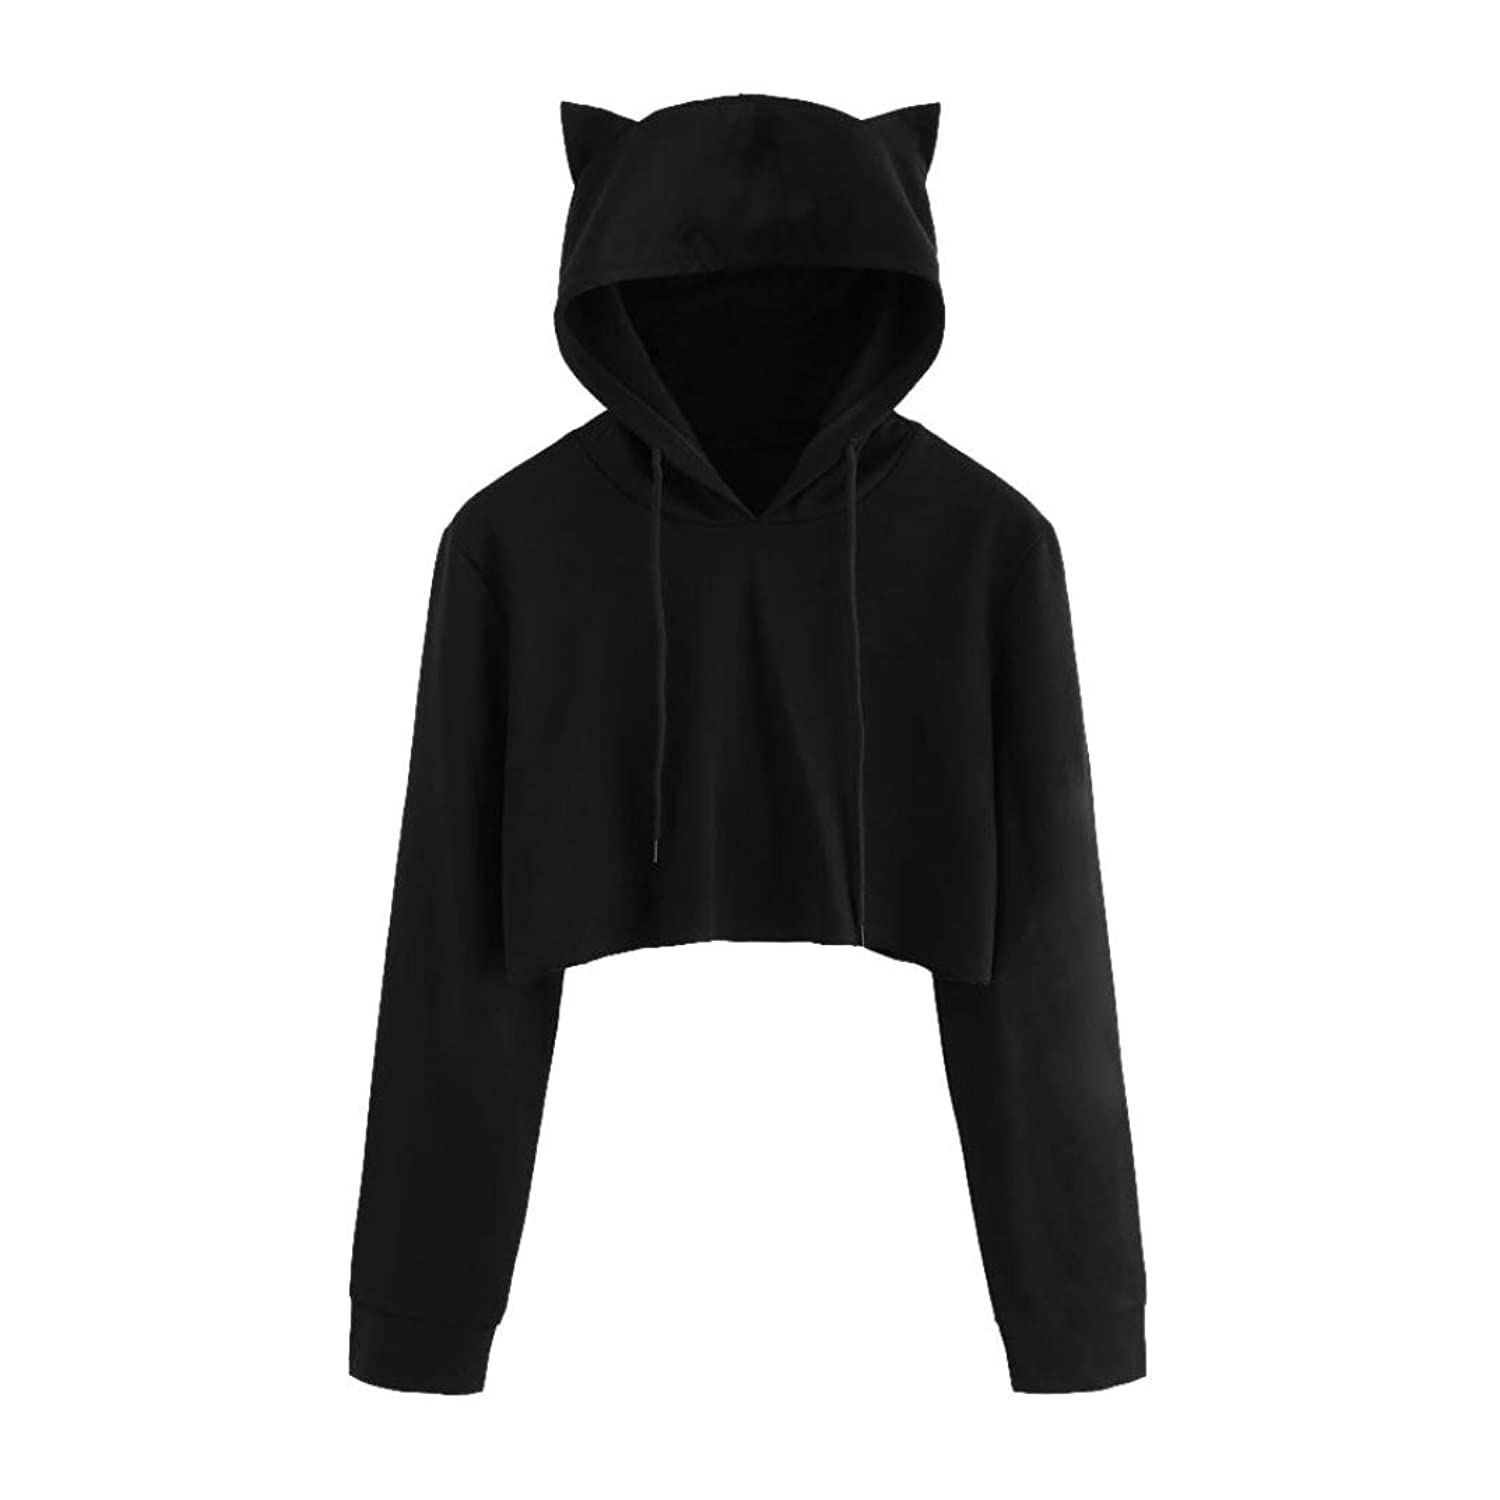 c65bfb3e6a3 Top 10 wholesale Cat Ear Sweater - Chinabrands.com